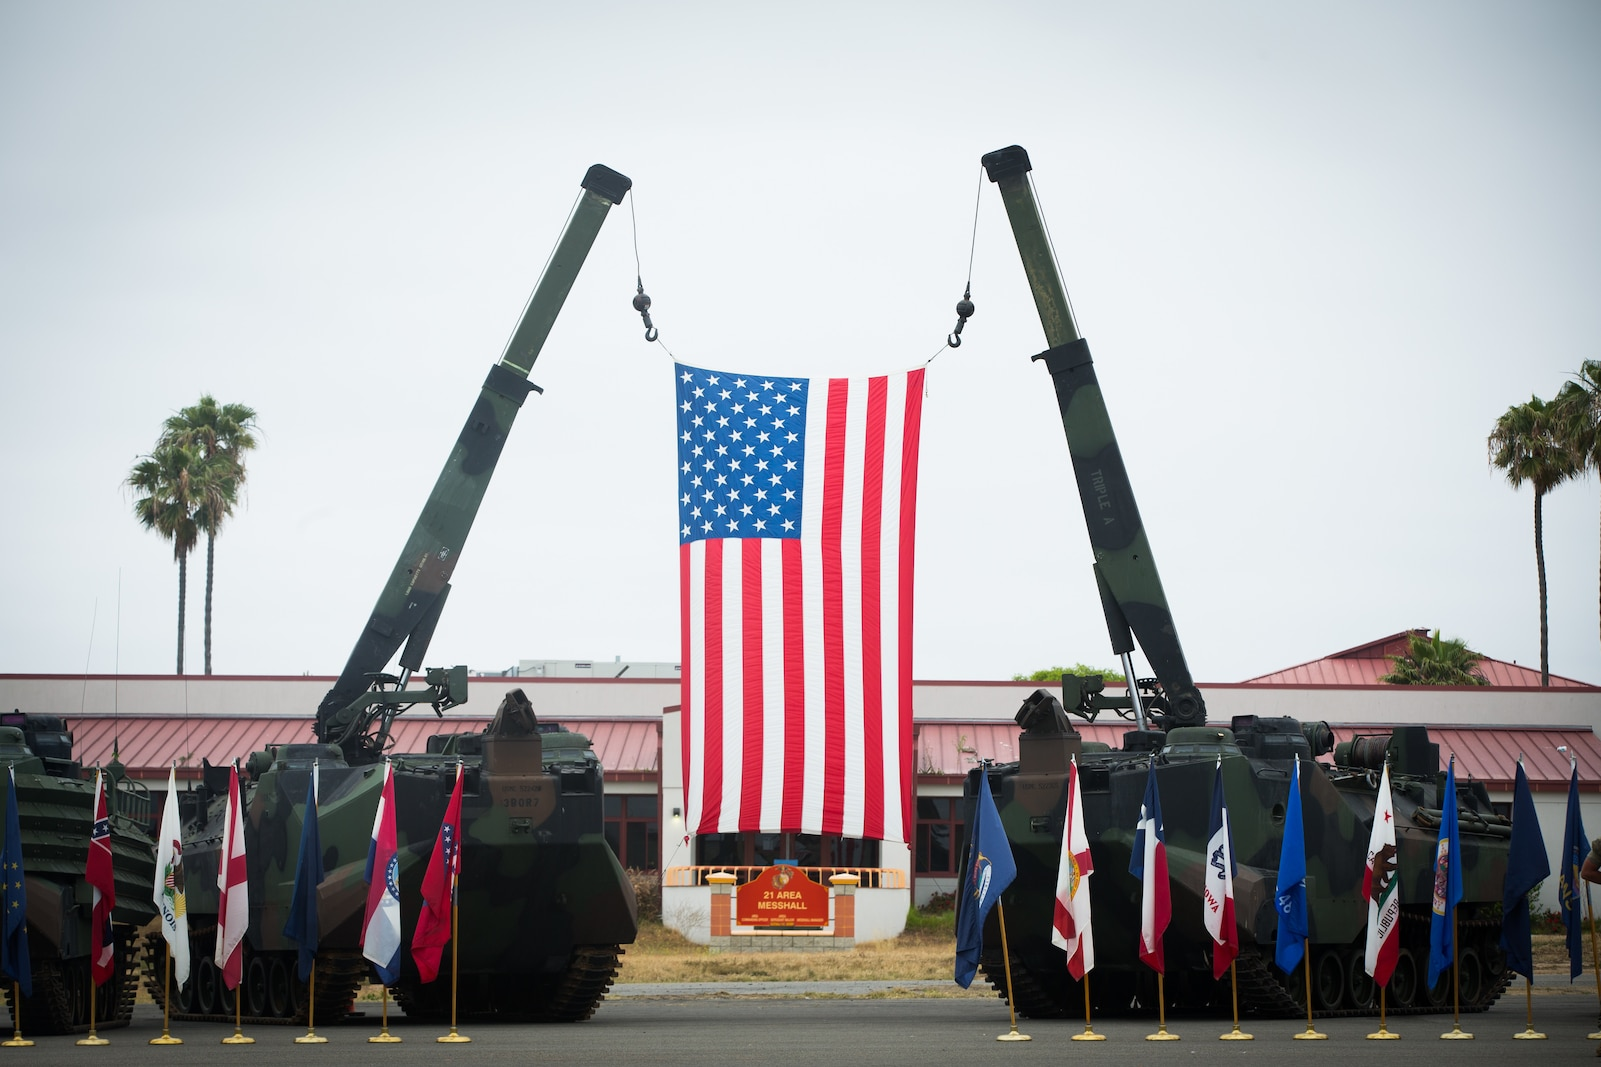 A U.S. flag hangs above the parade deck during a change of command ceremony at Marine Corps Base Camp Pendleton, Calif., June 1, 2018. The ceremony was held in honor of Lt. Col. William E. O'Brien, who relinquished his post as 3rd Assault Amphibian Battalion commanding general to Lt. Col. Keith C. Brenize.